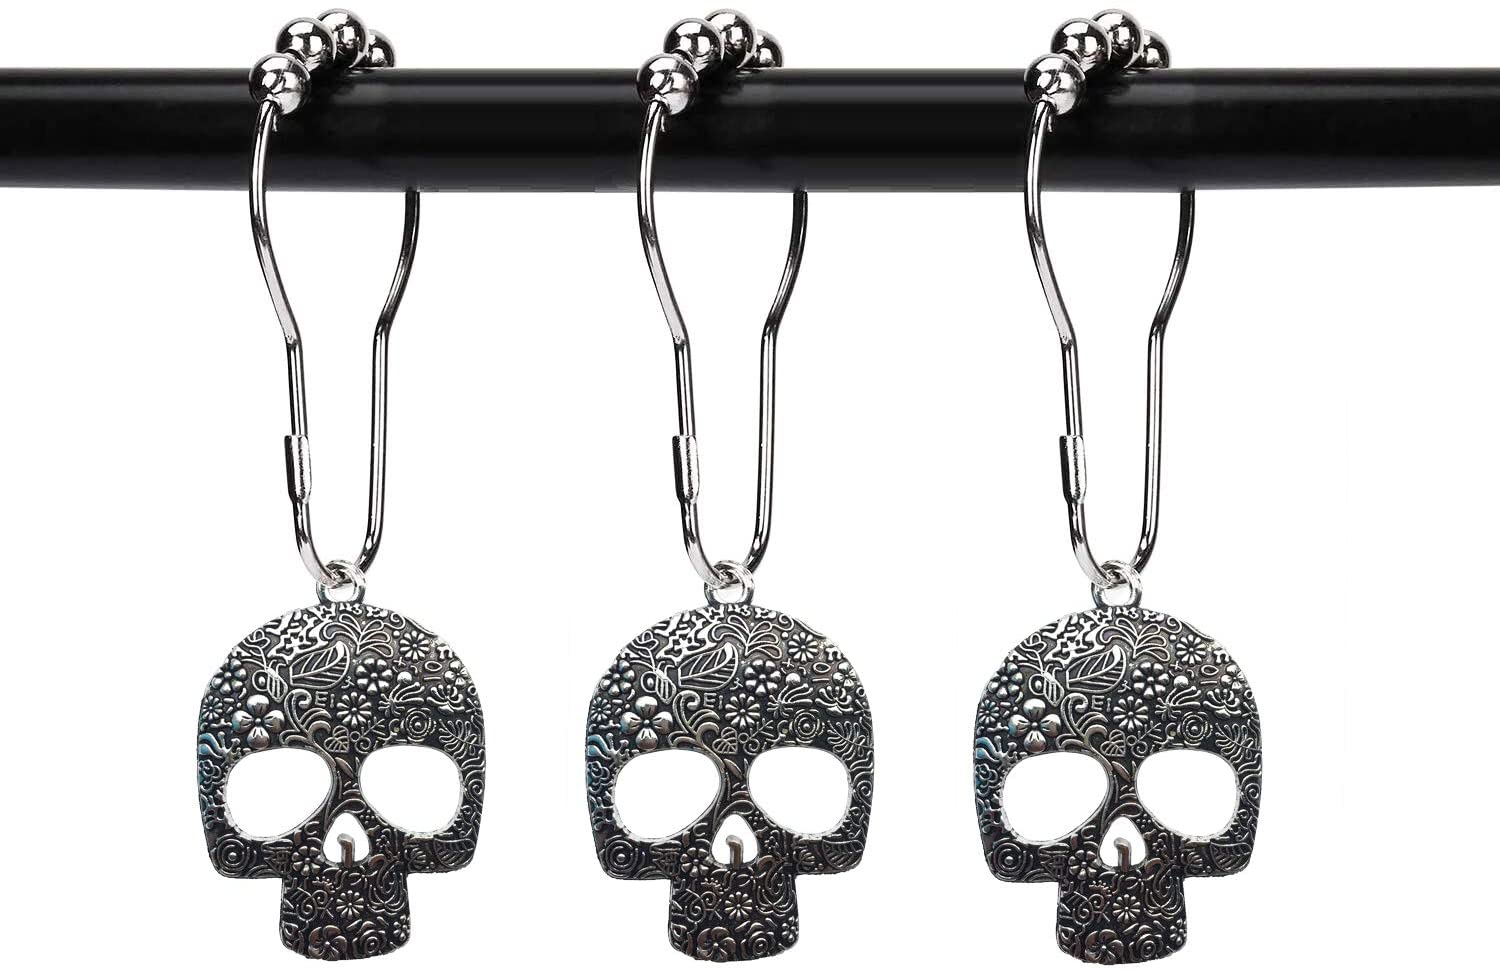 ZILucky Set of 12 Sugar Skull Shower Curtain Hooks Decorative Home Bathroom Stainless Steel Rustproof Skeletons Shower Curtain Rings Decor Accessories (Silver)